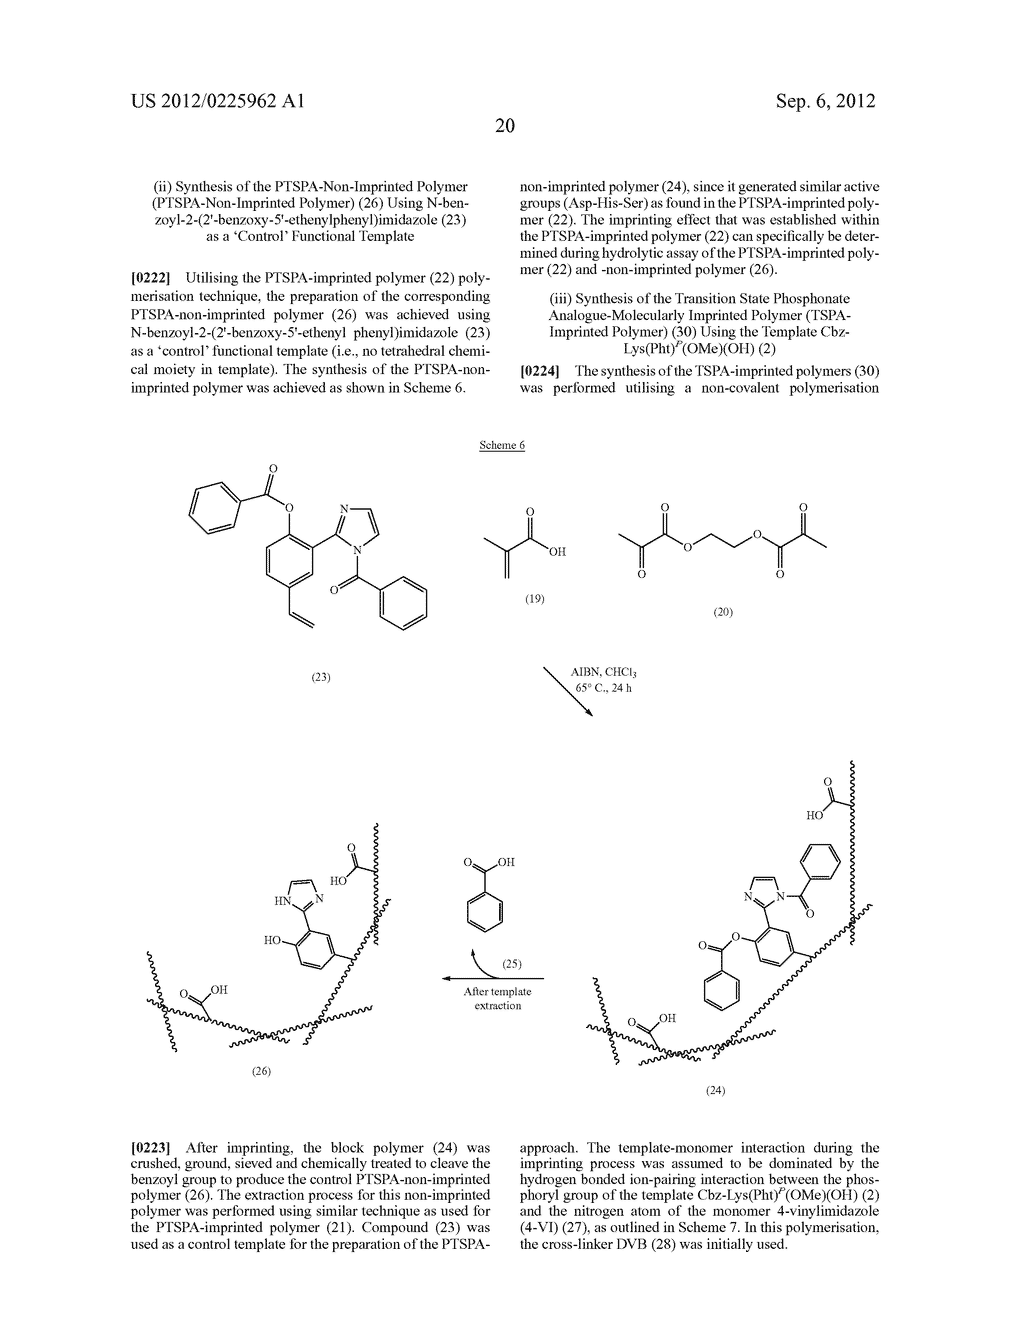 MOLECULARLY IMPRINTED POLYMERS, METHODS FOR THEIR PRODUCTION AND USES     THEREOF - diagram, schematic, and image 25